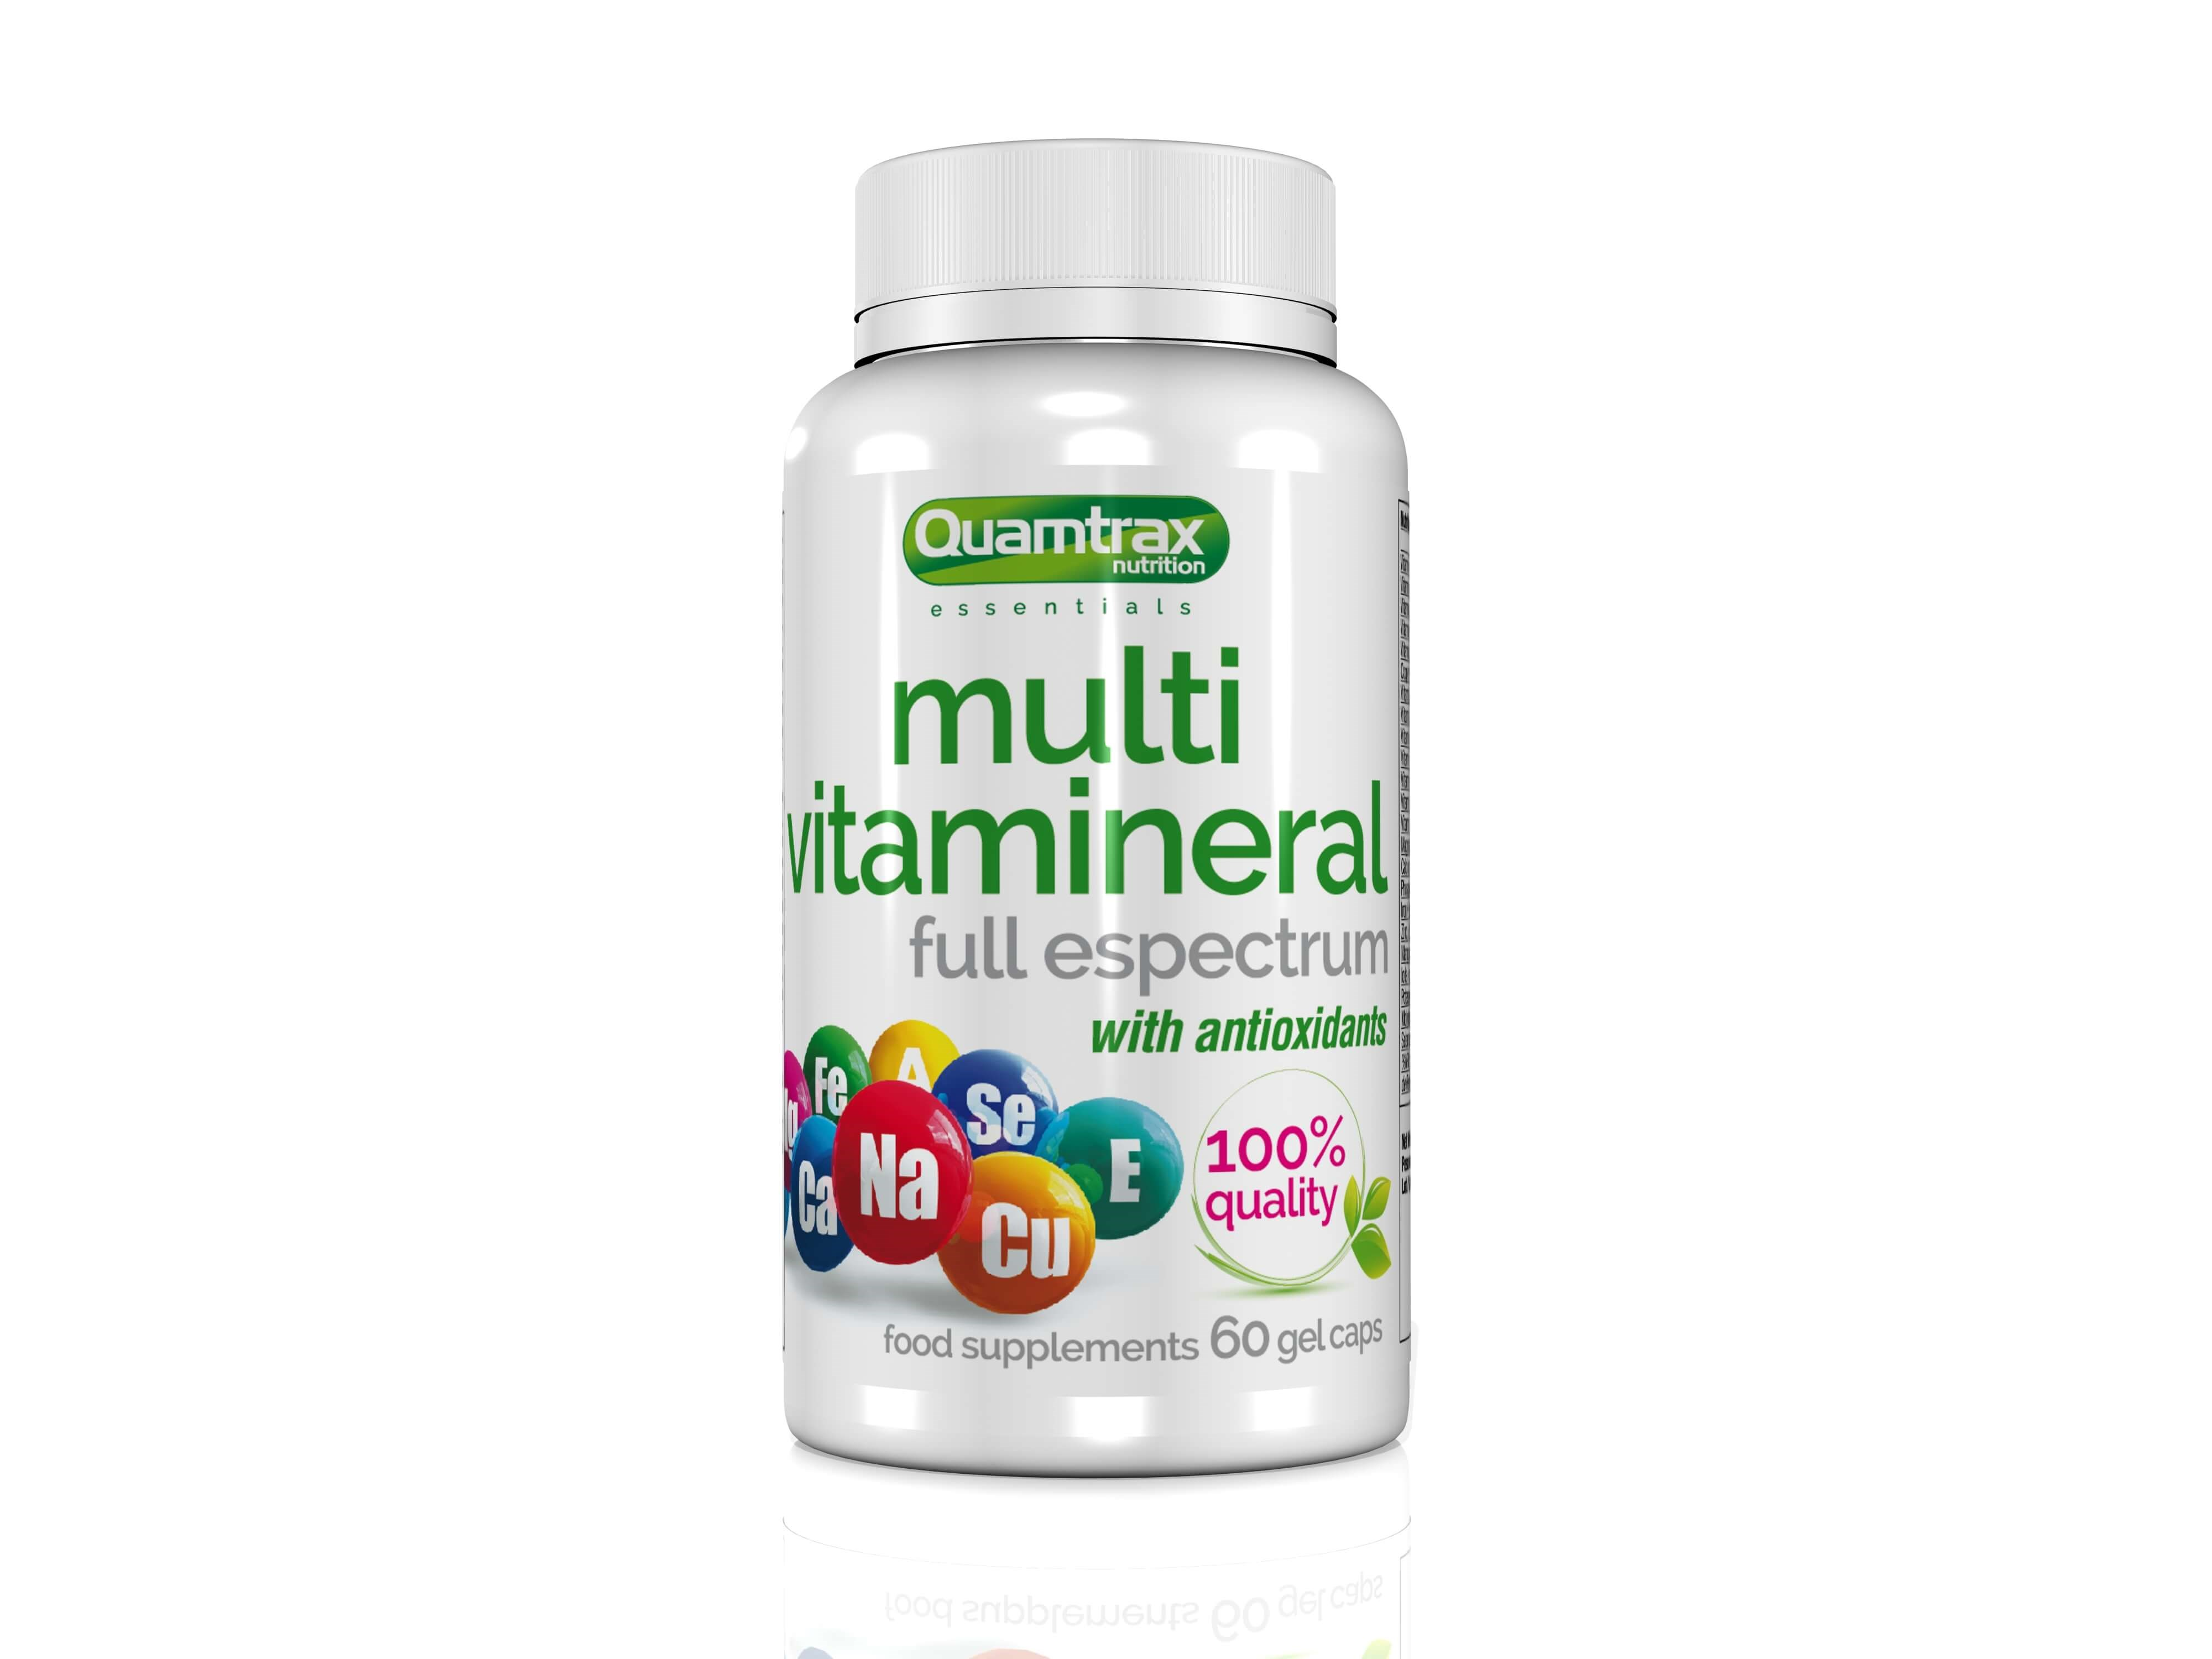 Quamtrax Essentials Multivitamineral 60 capsules